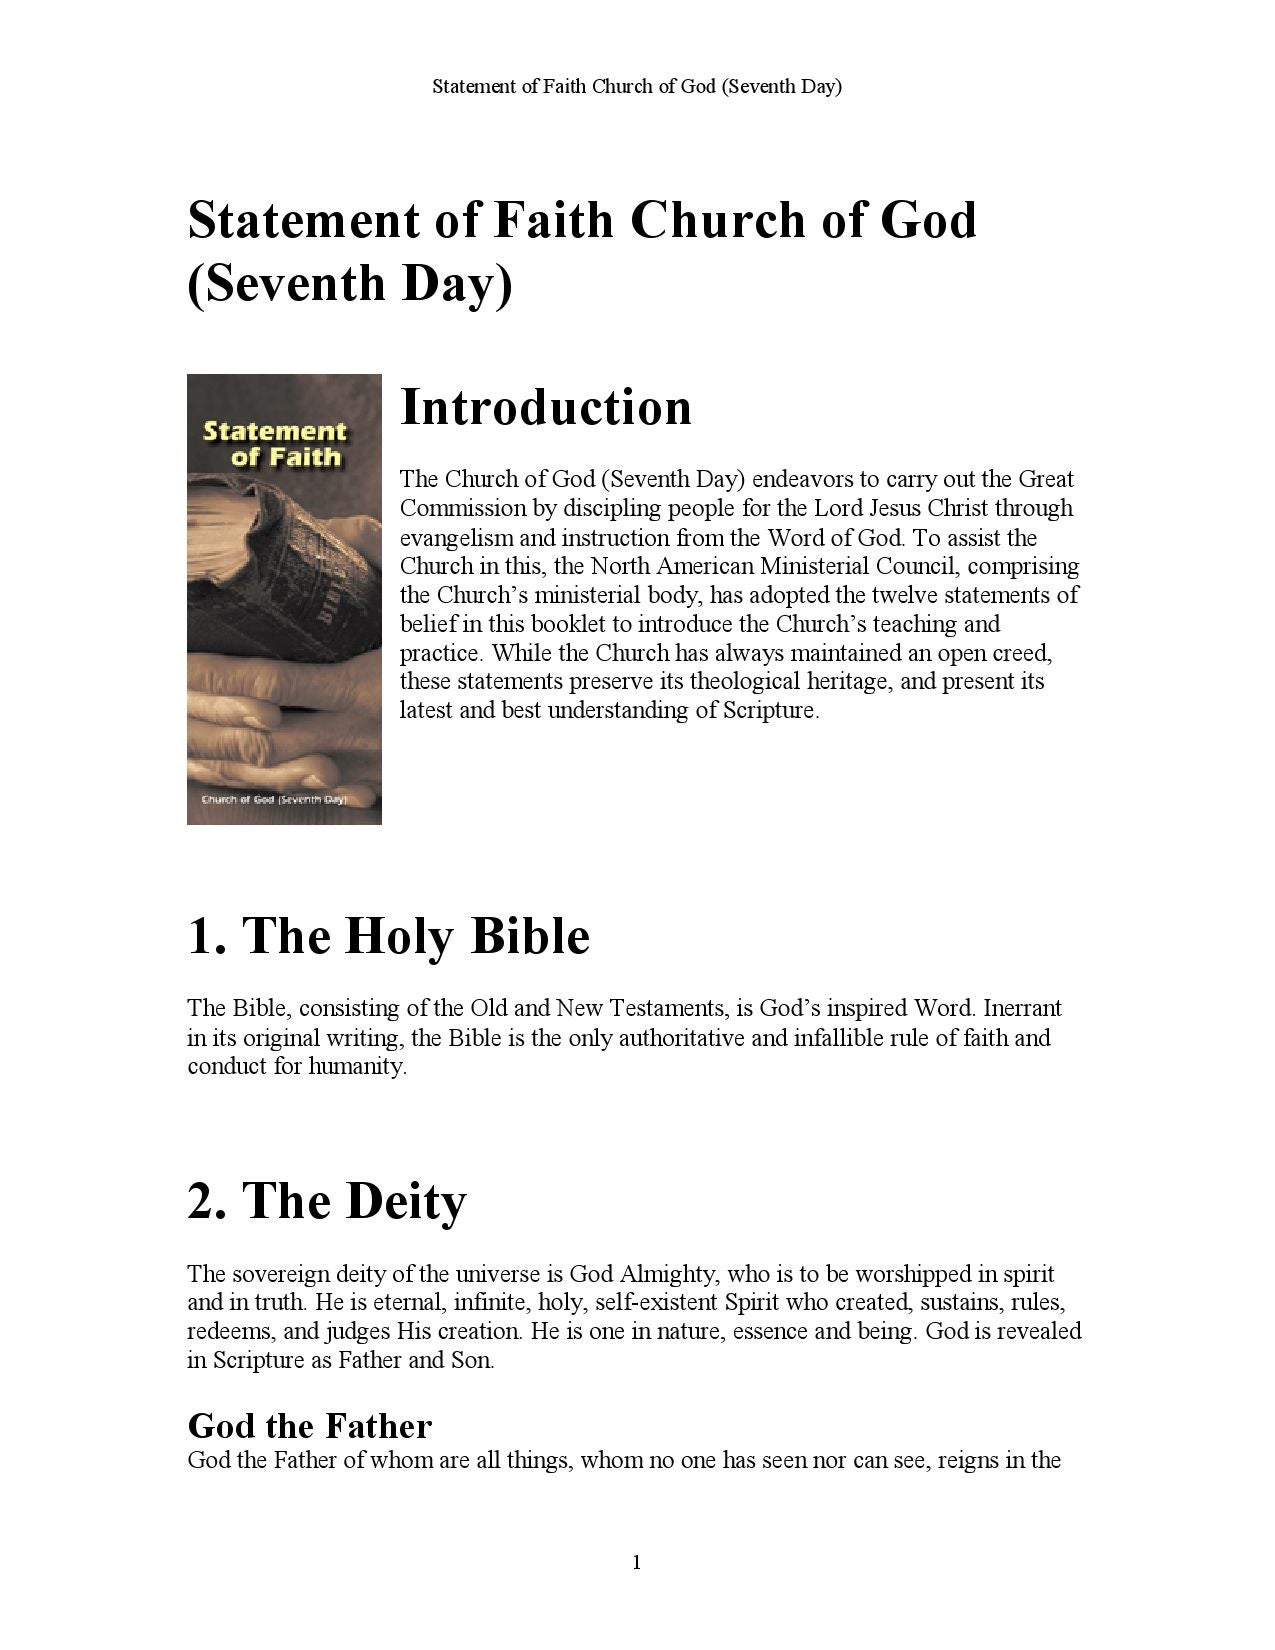 Statement of Faith Church of God (Seventh day) by Church of